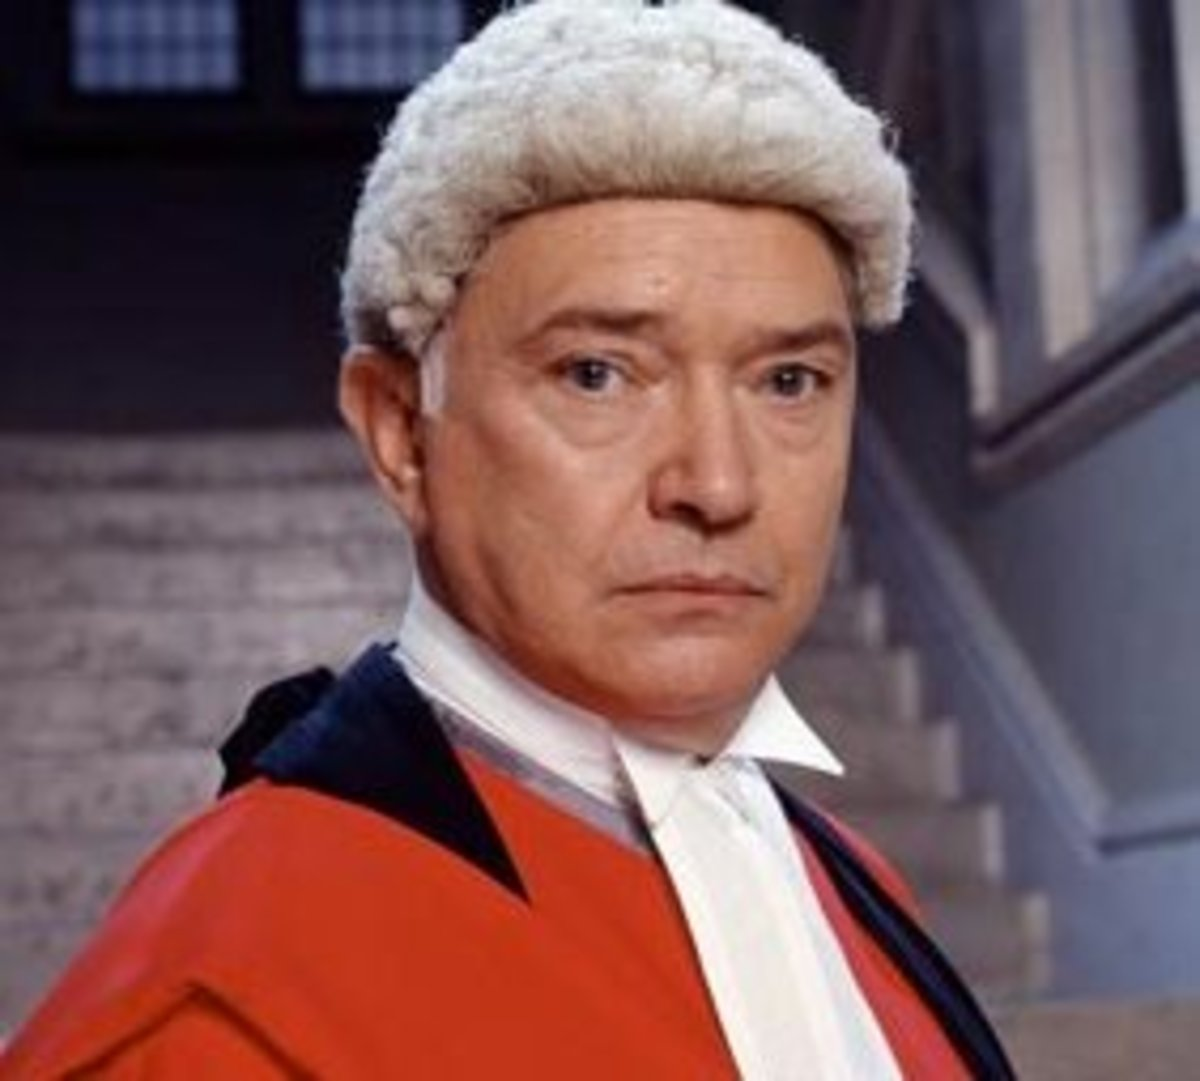 Judge John Deeds (Martin Shaw)